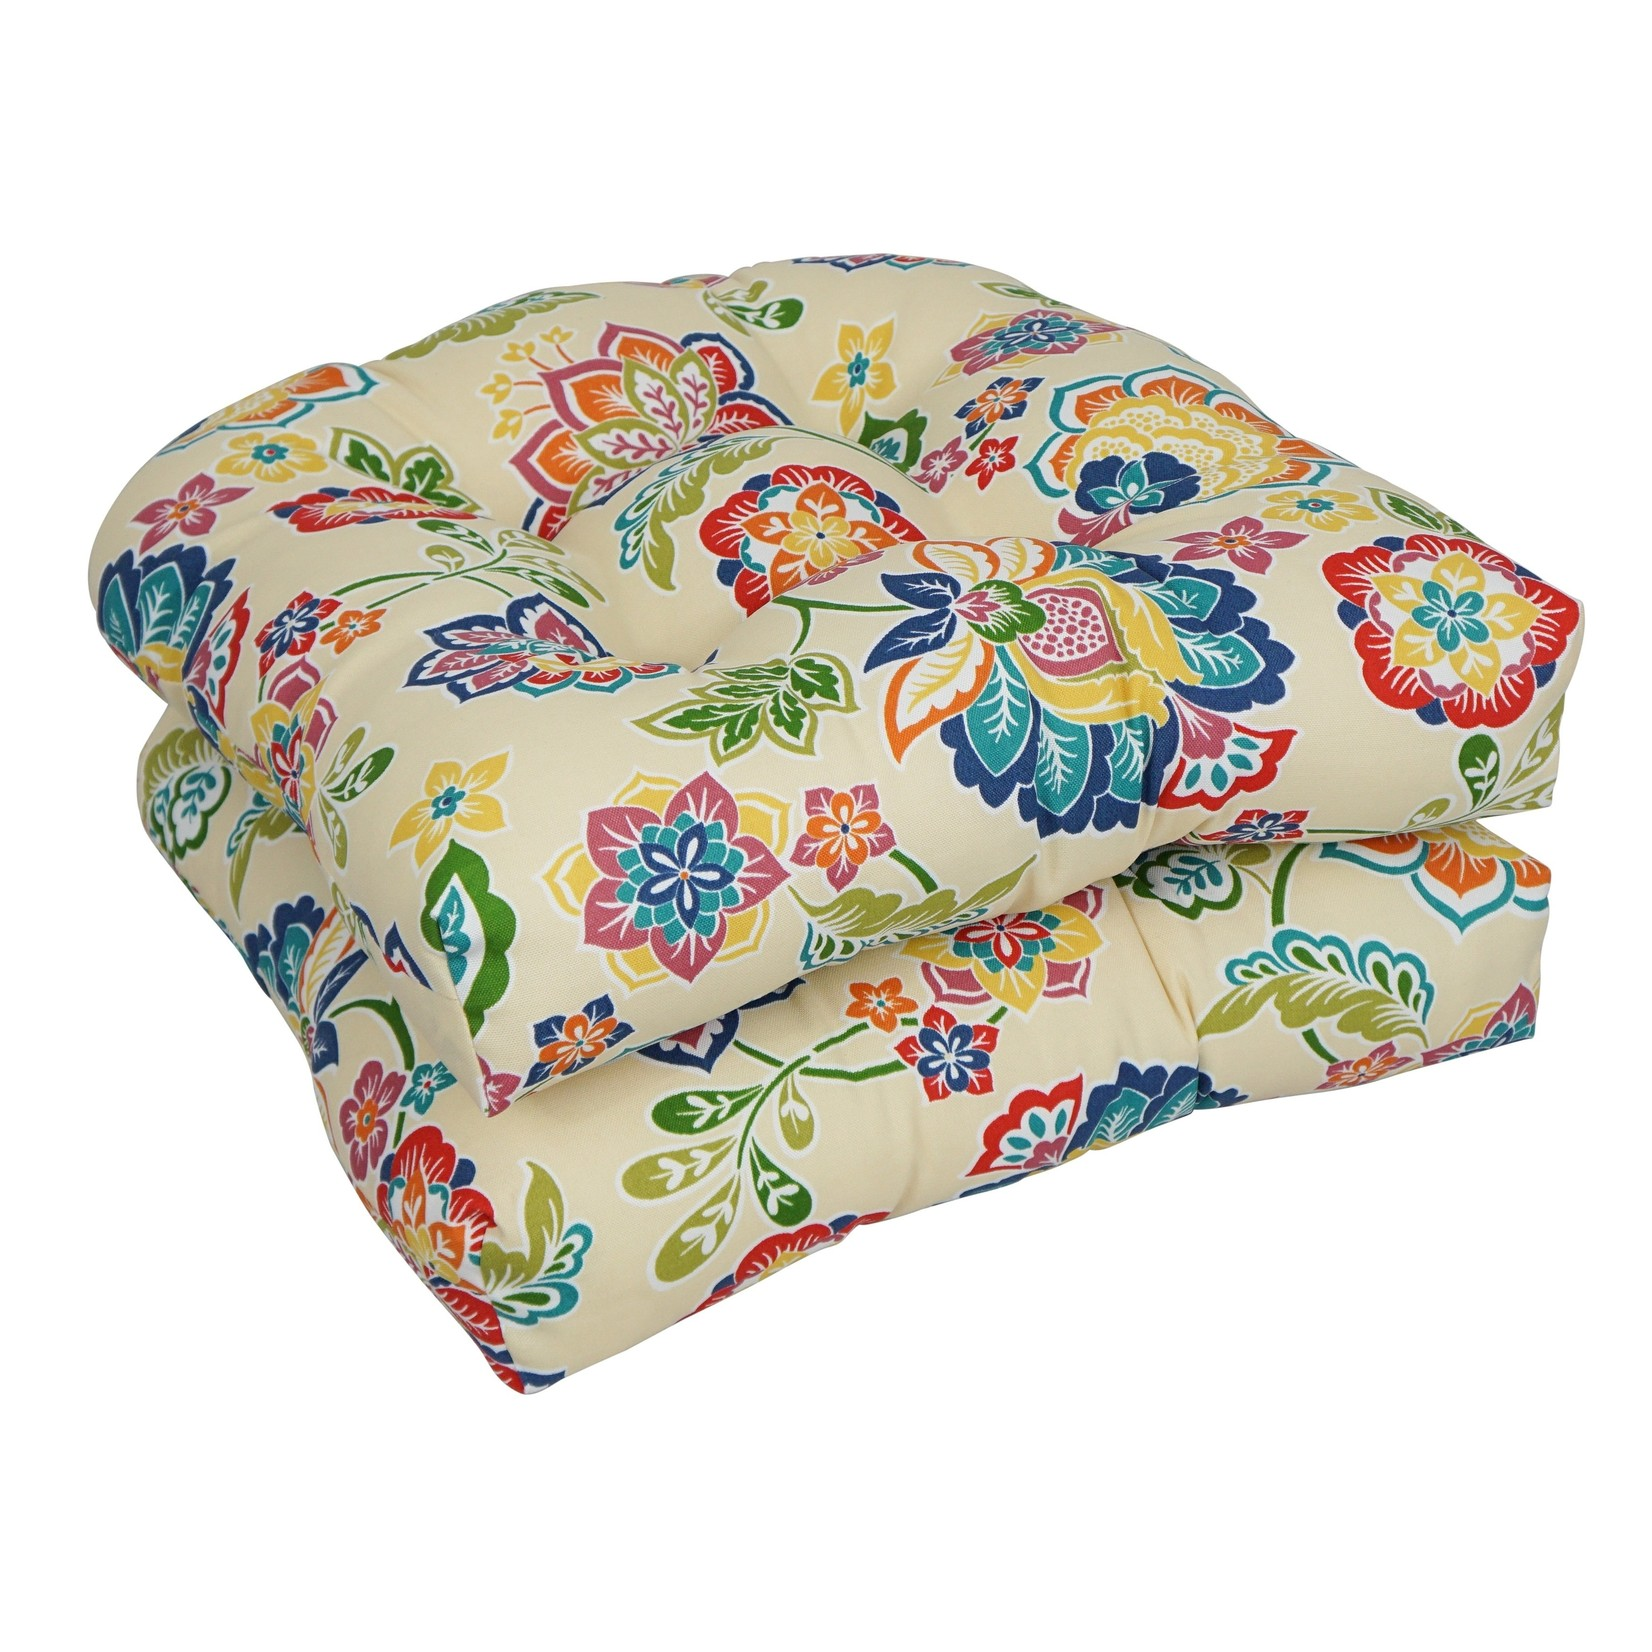 *Tufted Dining Chair Indoor/Outdoor Seat Cushion - Includes ONE seat cushion (Final Sale)